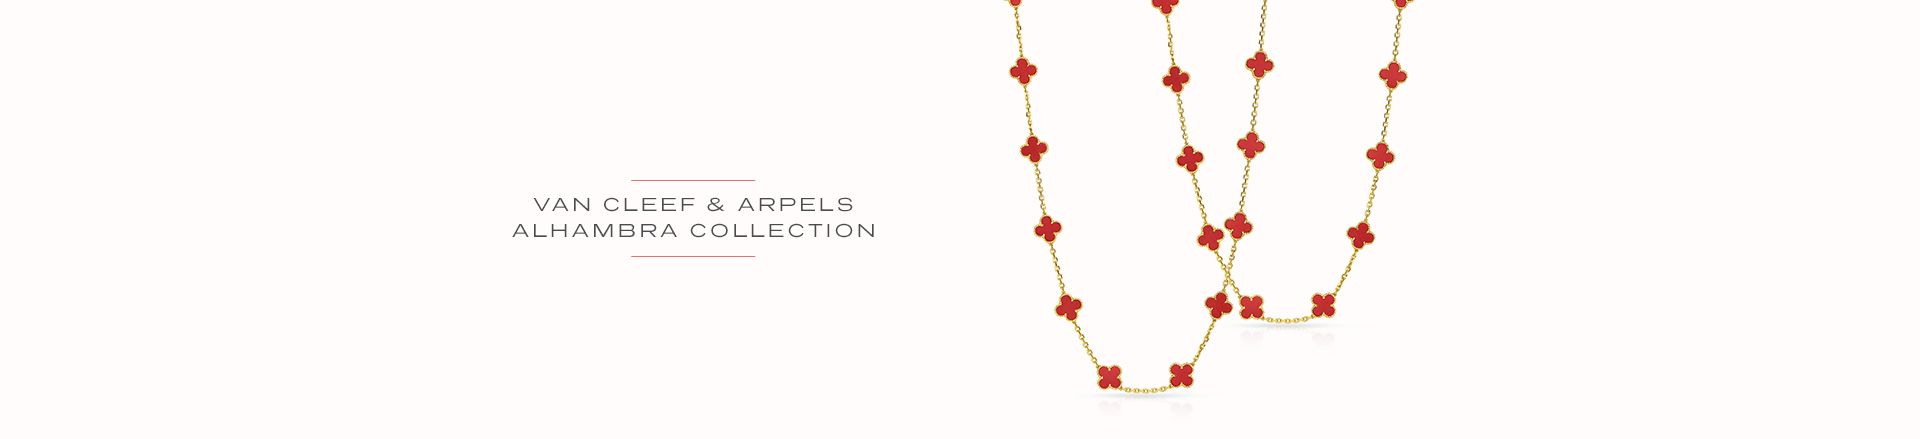 Van Cleef & Arpels Alhambra Collection